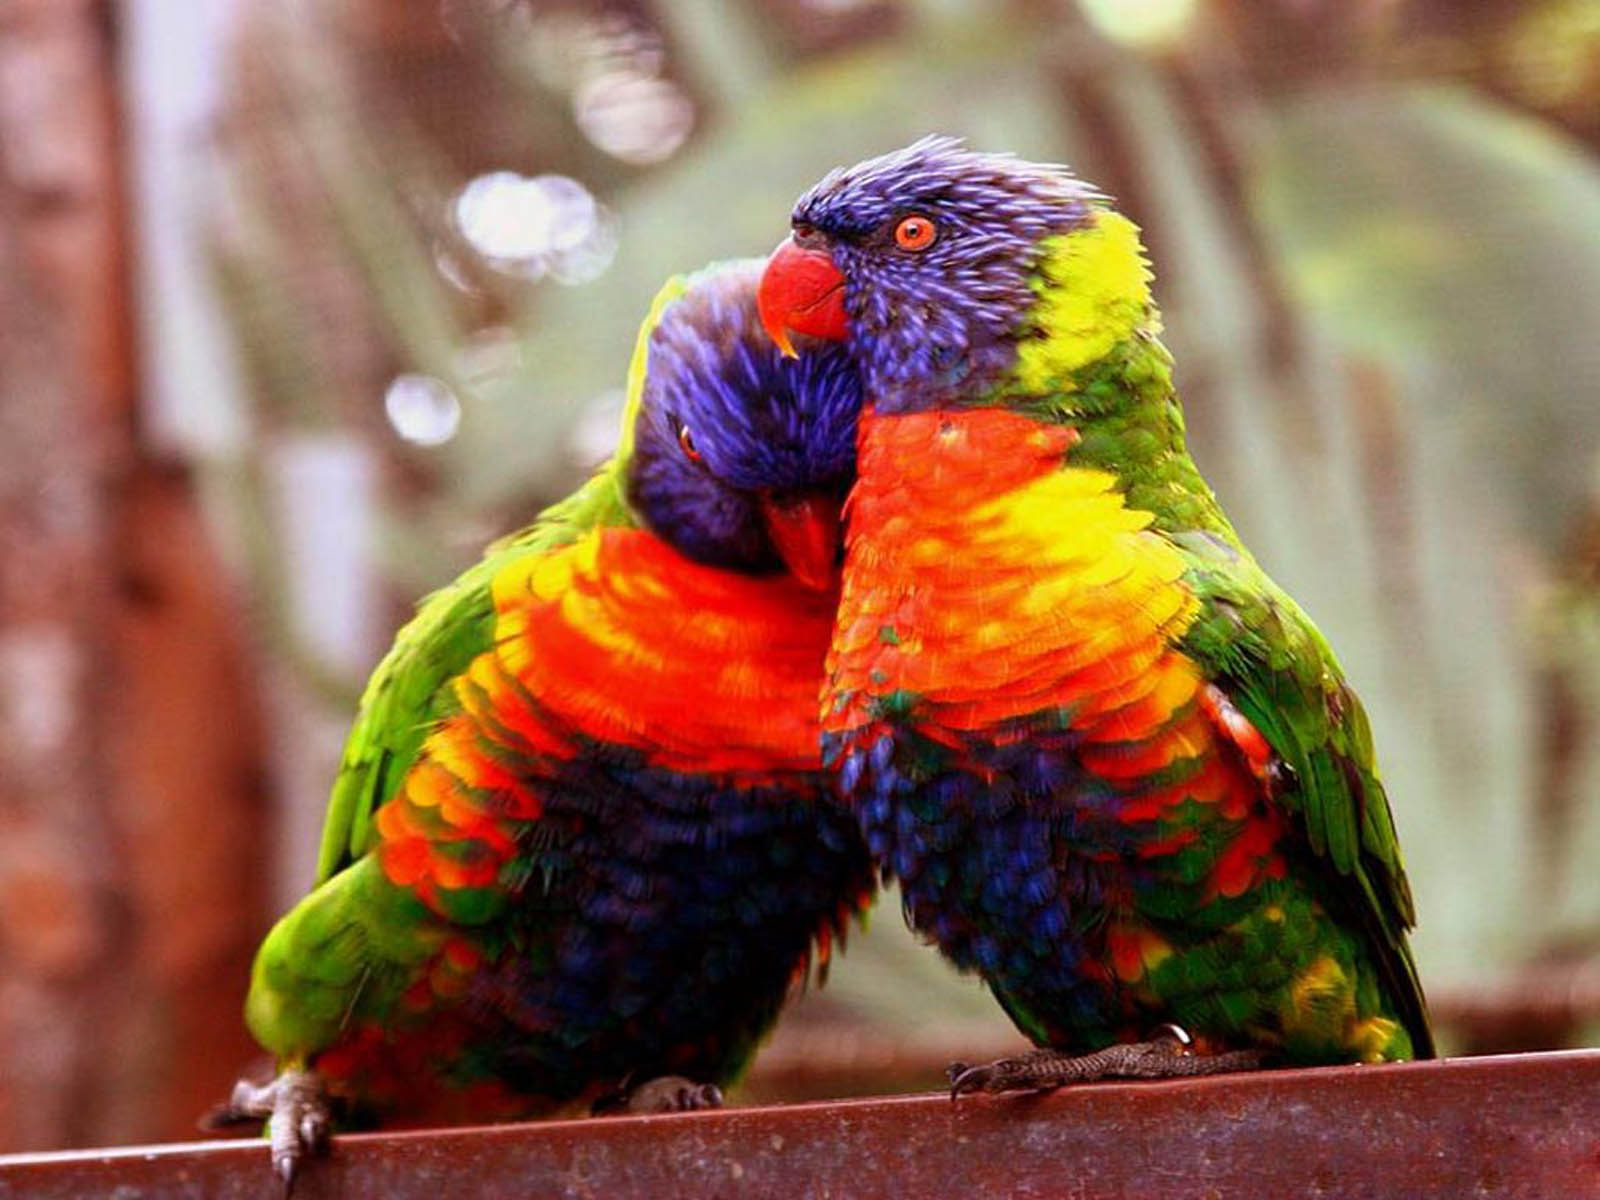 Incredible Images: Love Birds (High resolution) - photo#41